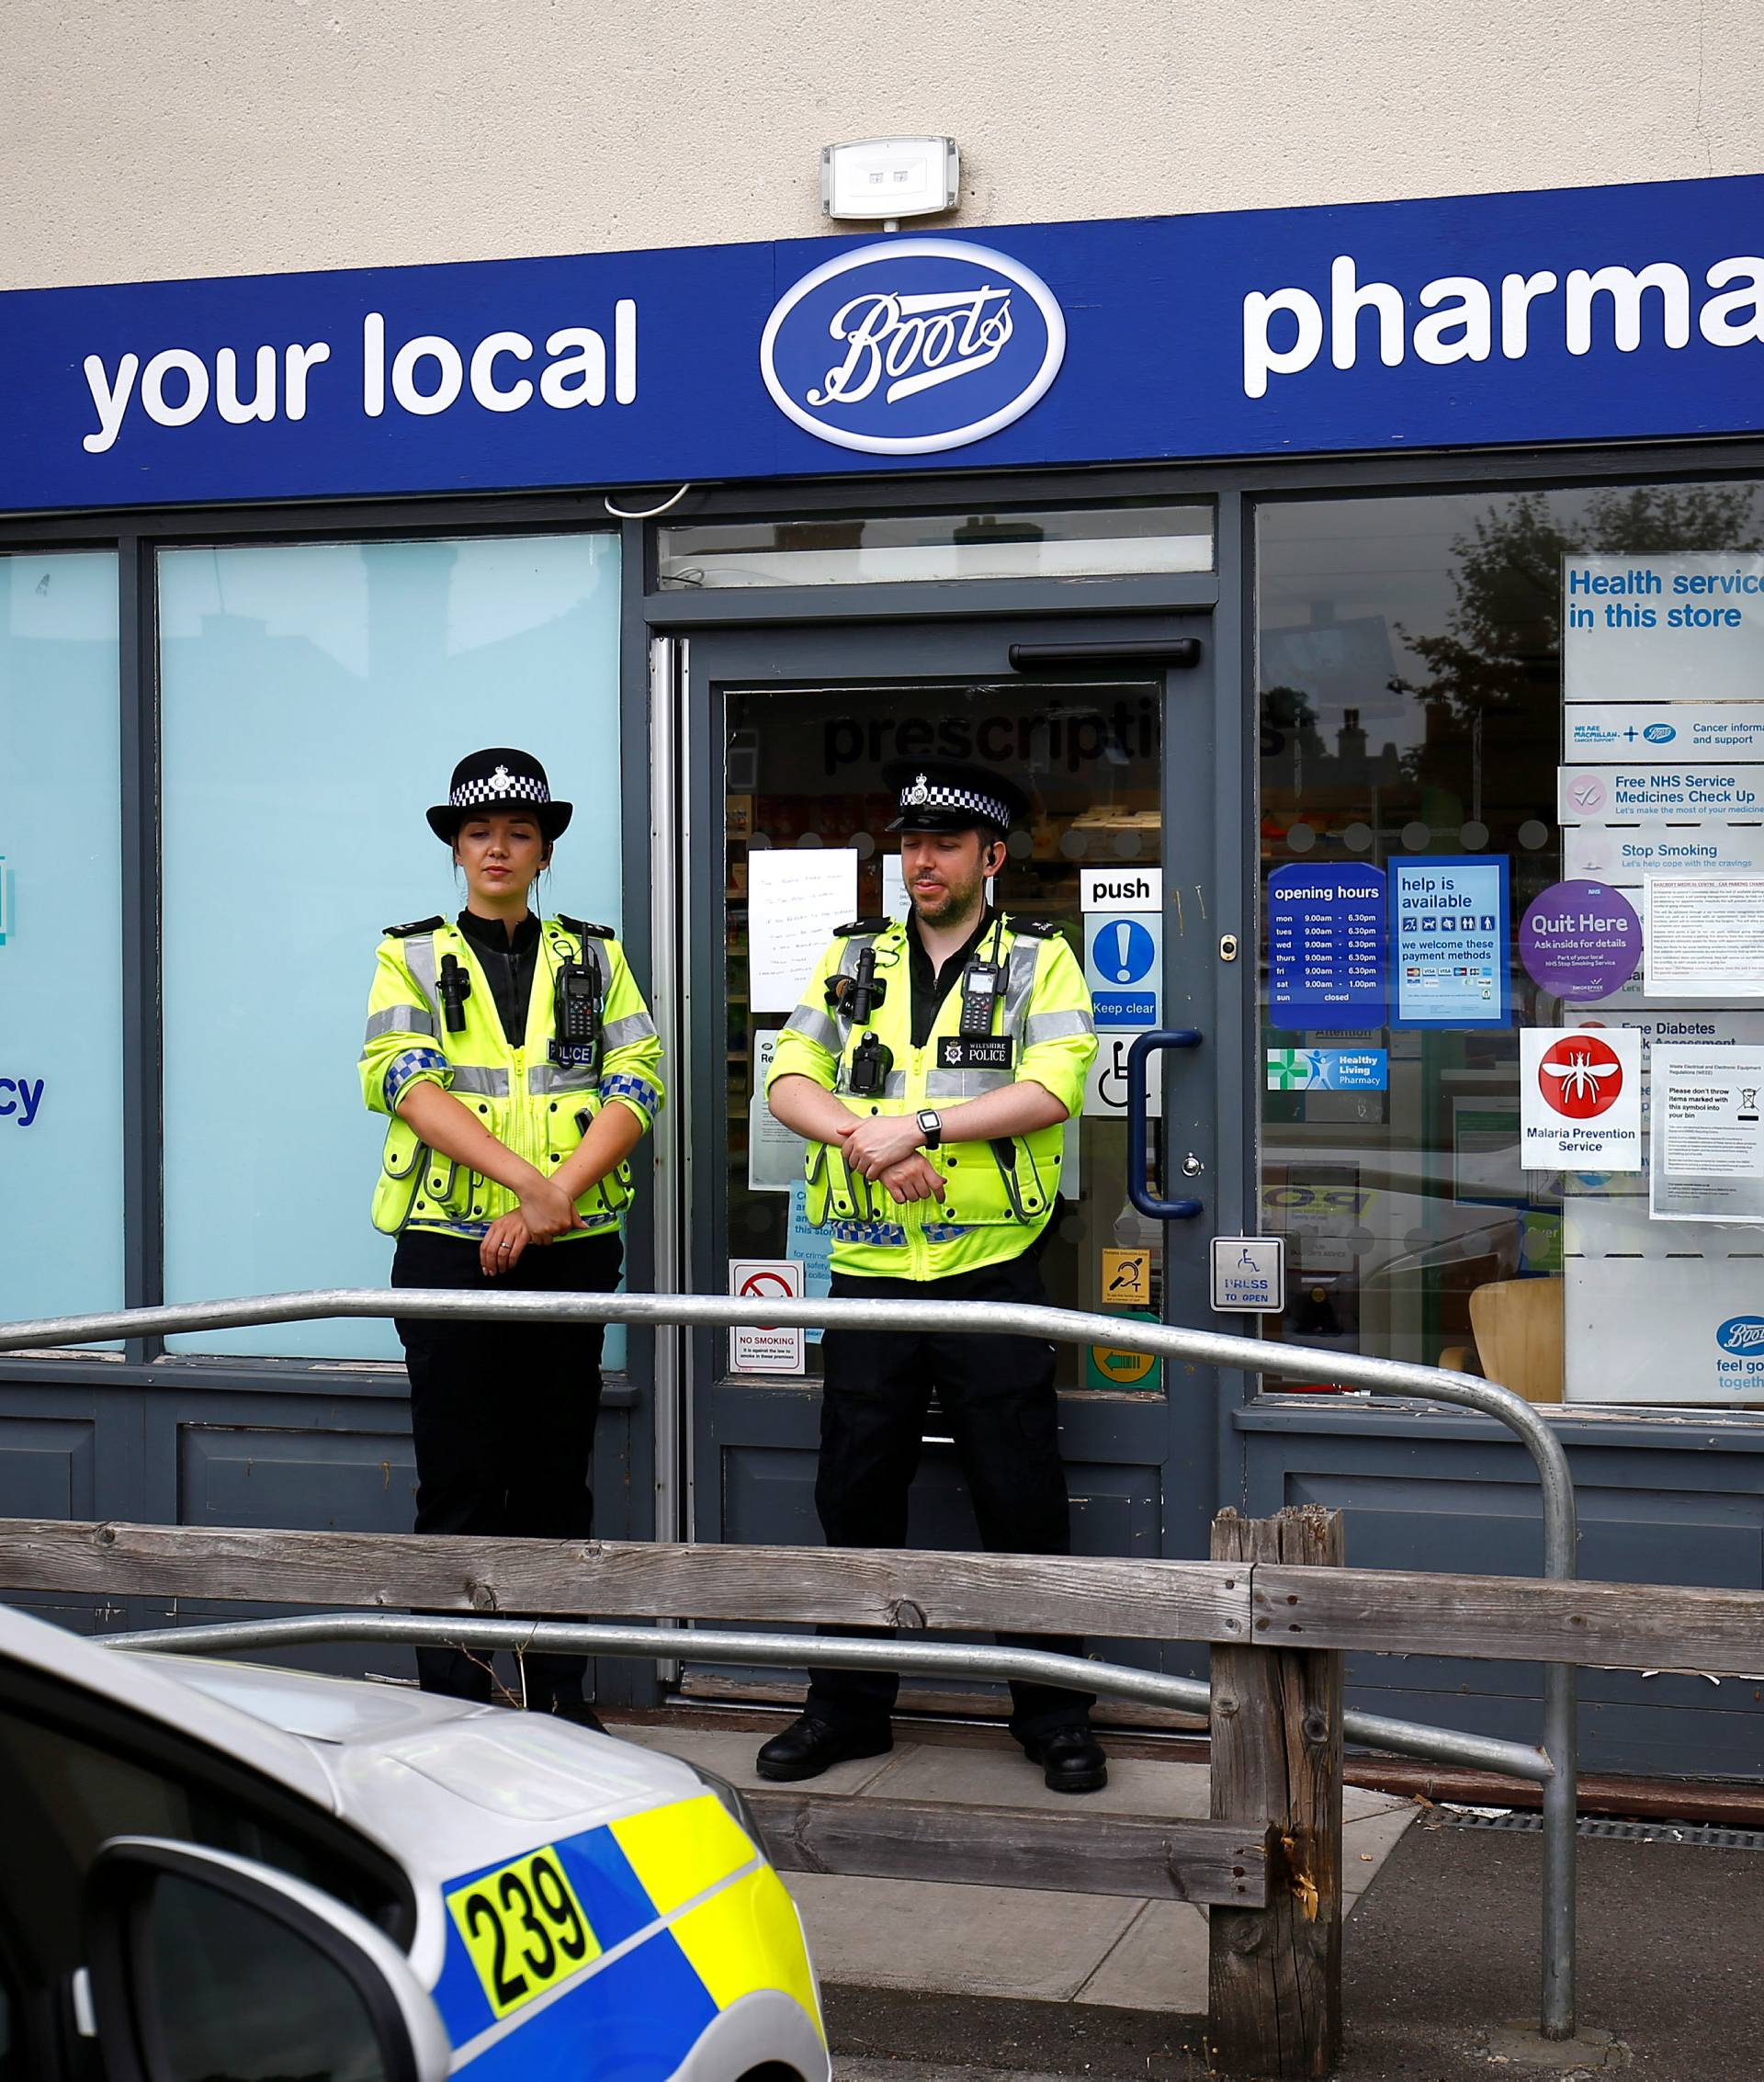 Police officers guard outside a branch of Boots pharmacy, which has been cordoned off after two people were hospitalised and police declared a 'major incident', in Amesbury